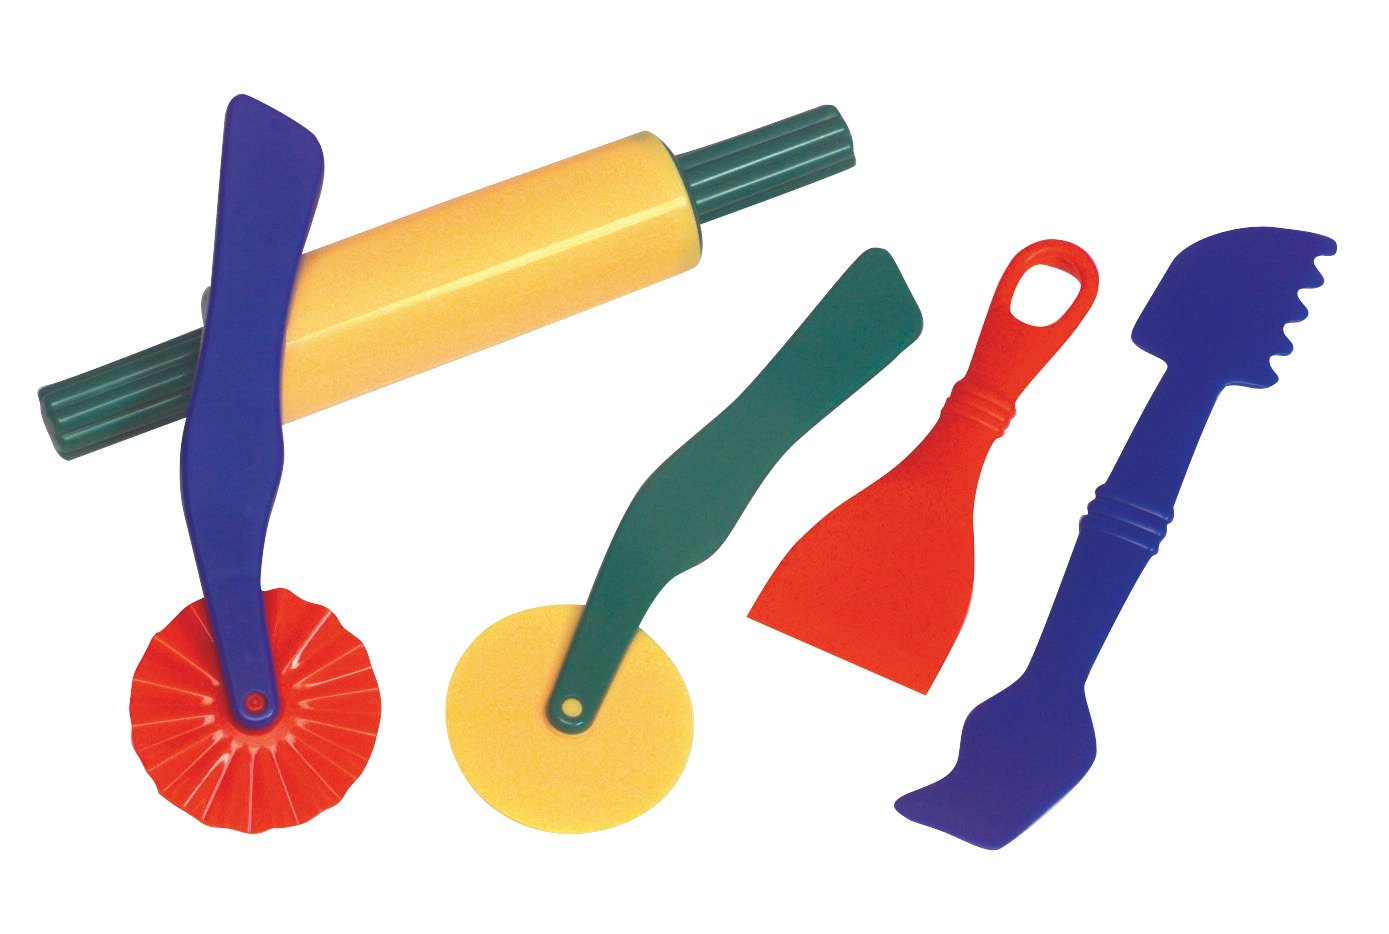 amazon com school smart plastic dough tools set of 5 assorted rh amazon com play dough snakes clipart play doh center clipart